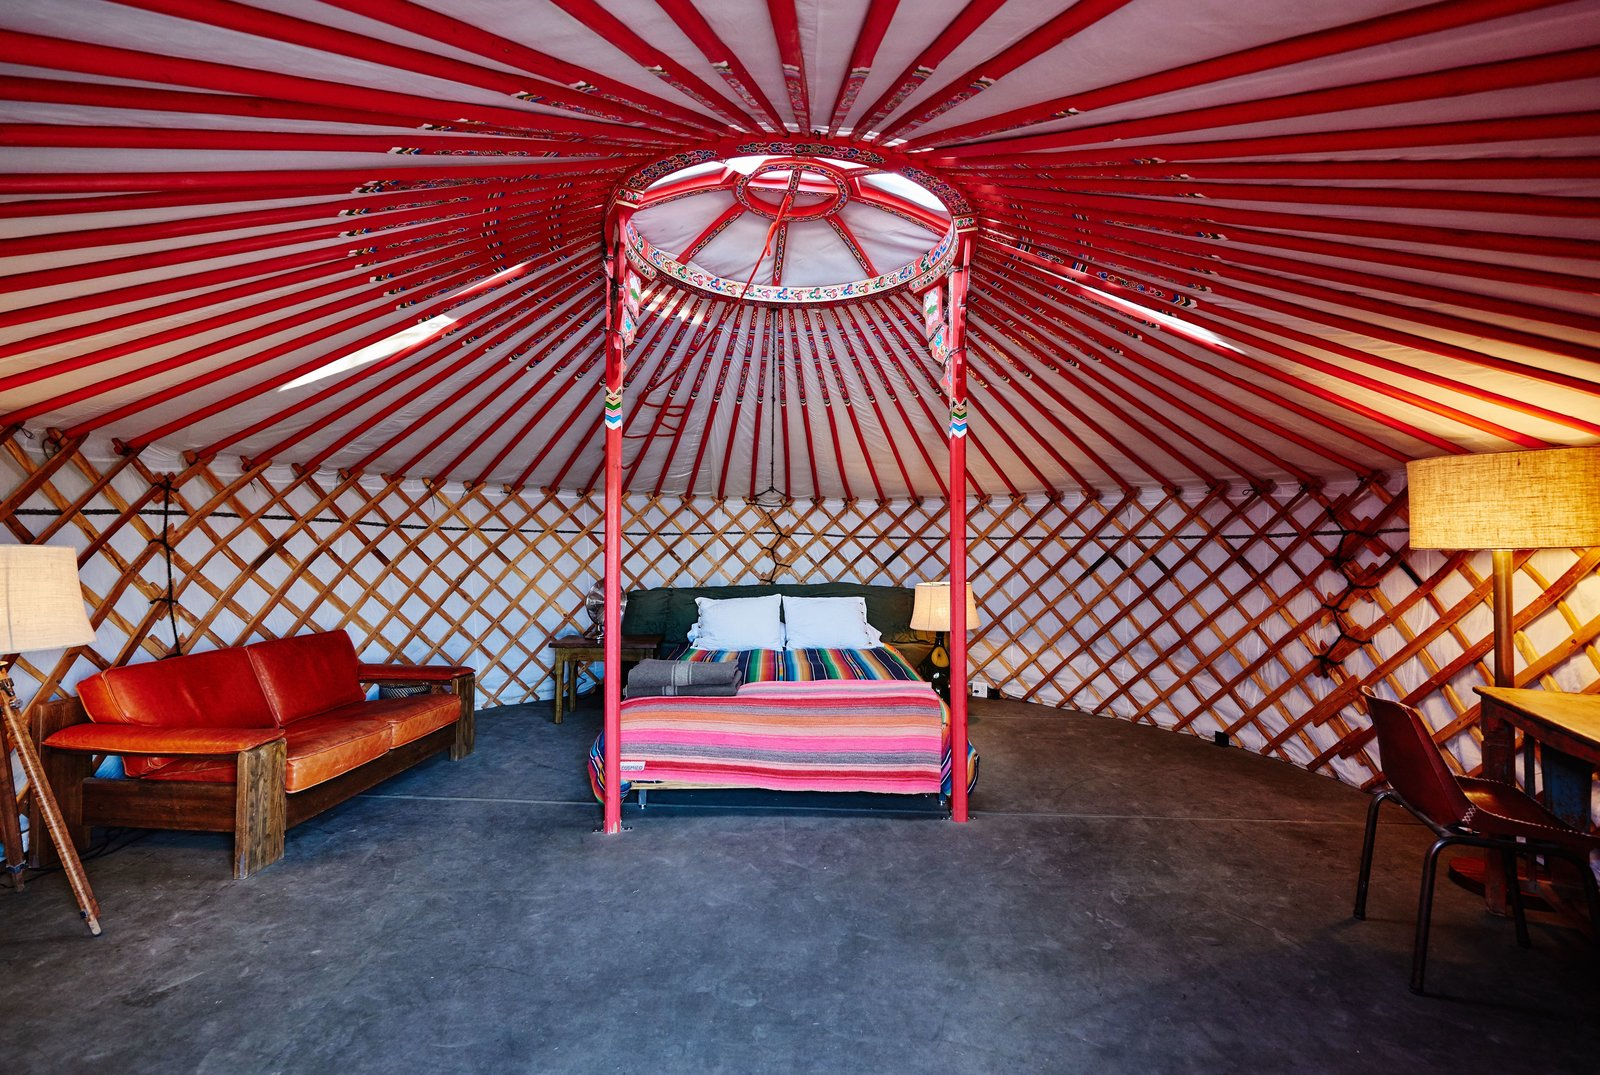 Bedroom, Night Stands, Table Lighting, Chair, Floor Lighting, Bed, and Lamps More so, El Cosmico features two yurts. Each one includes a queen-size bed, writing desk, and sofa, as well as A/C and heat.    Photo 11 of 12 in Let Your Creativity Soar at This Eclectic Hotel With Tents, Tepees, Yurts, and Trailers